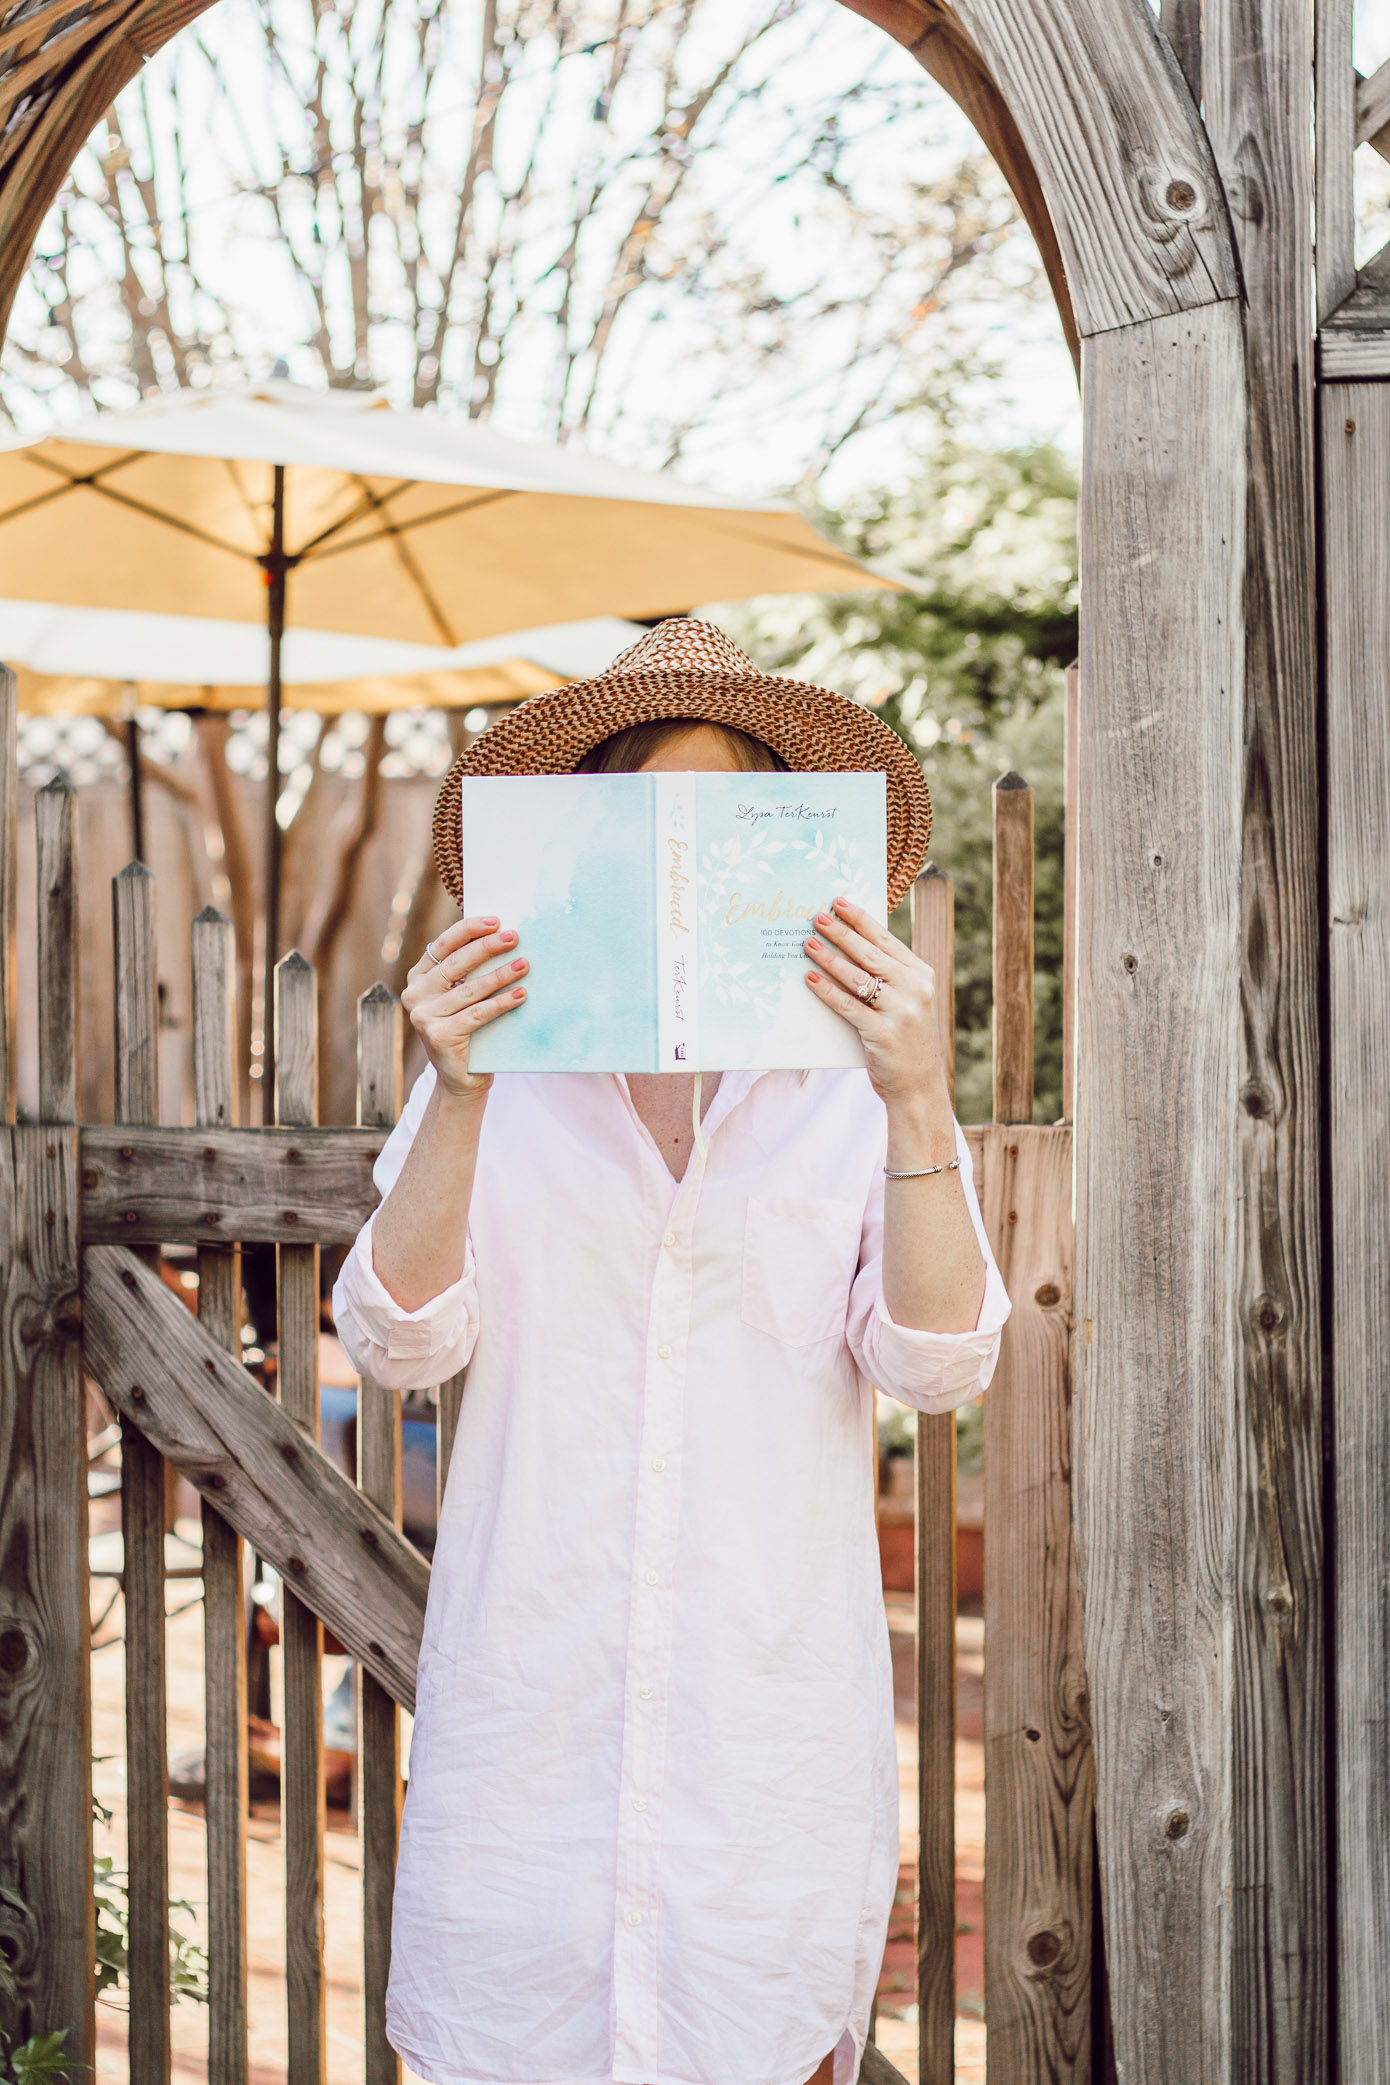 Best Devotionals for Young Women | Devotionals for 20-somethings | Louella Reese